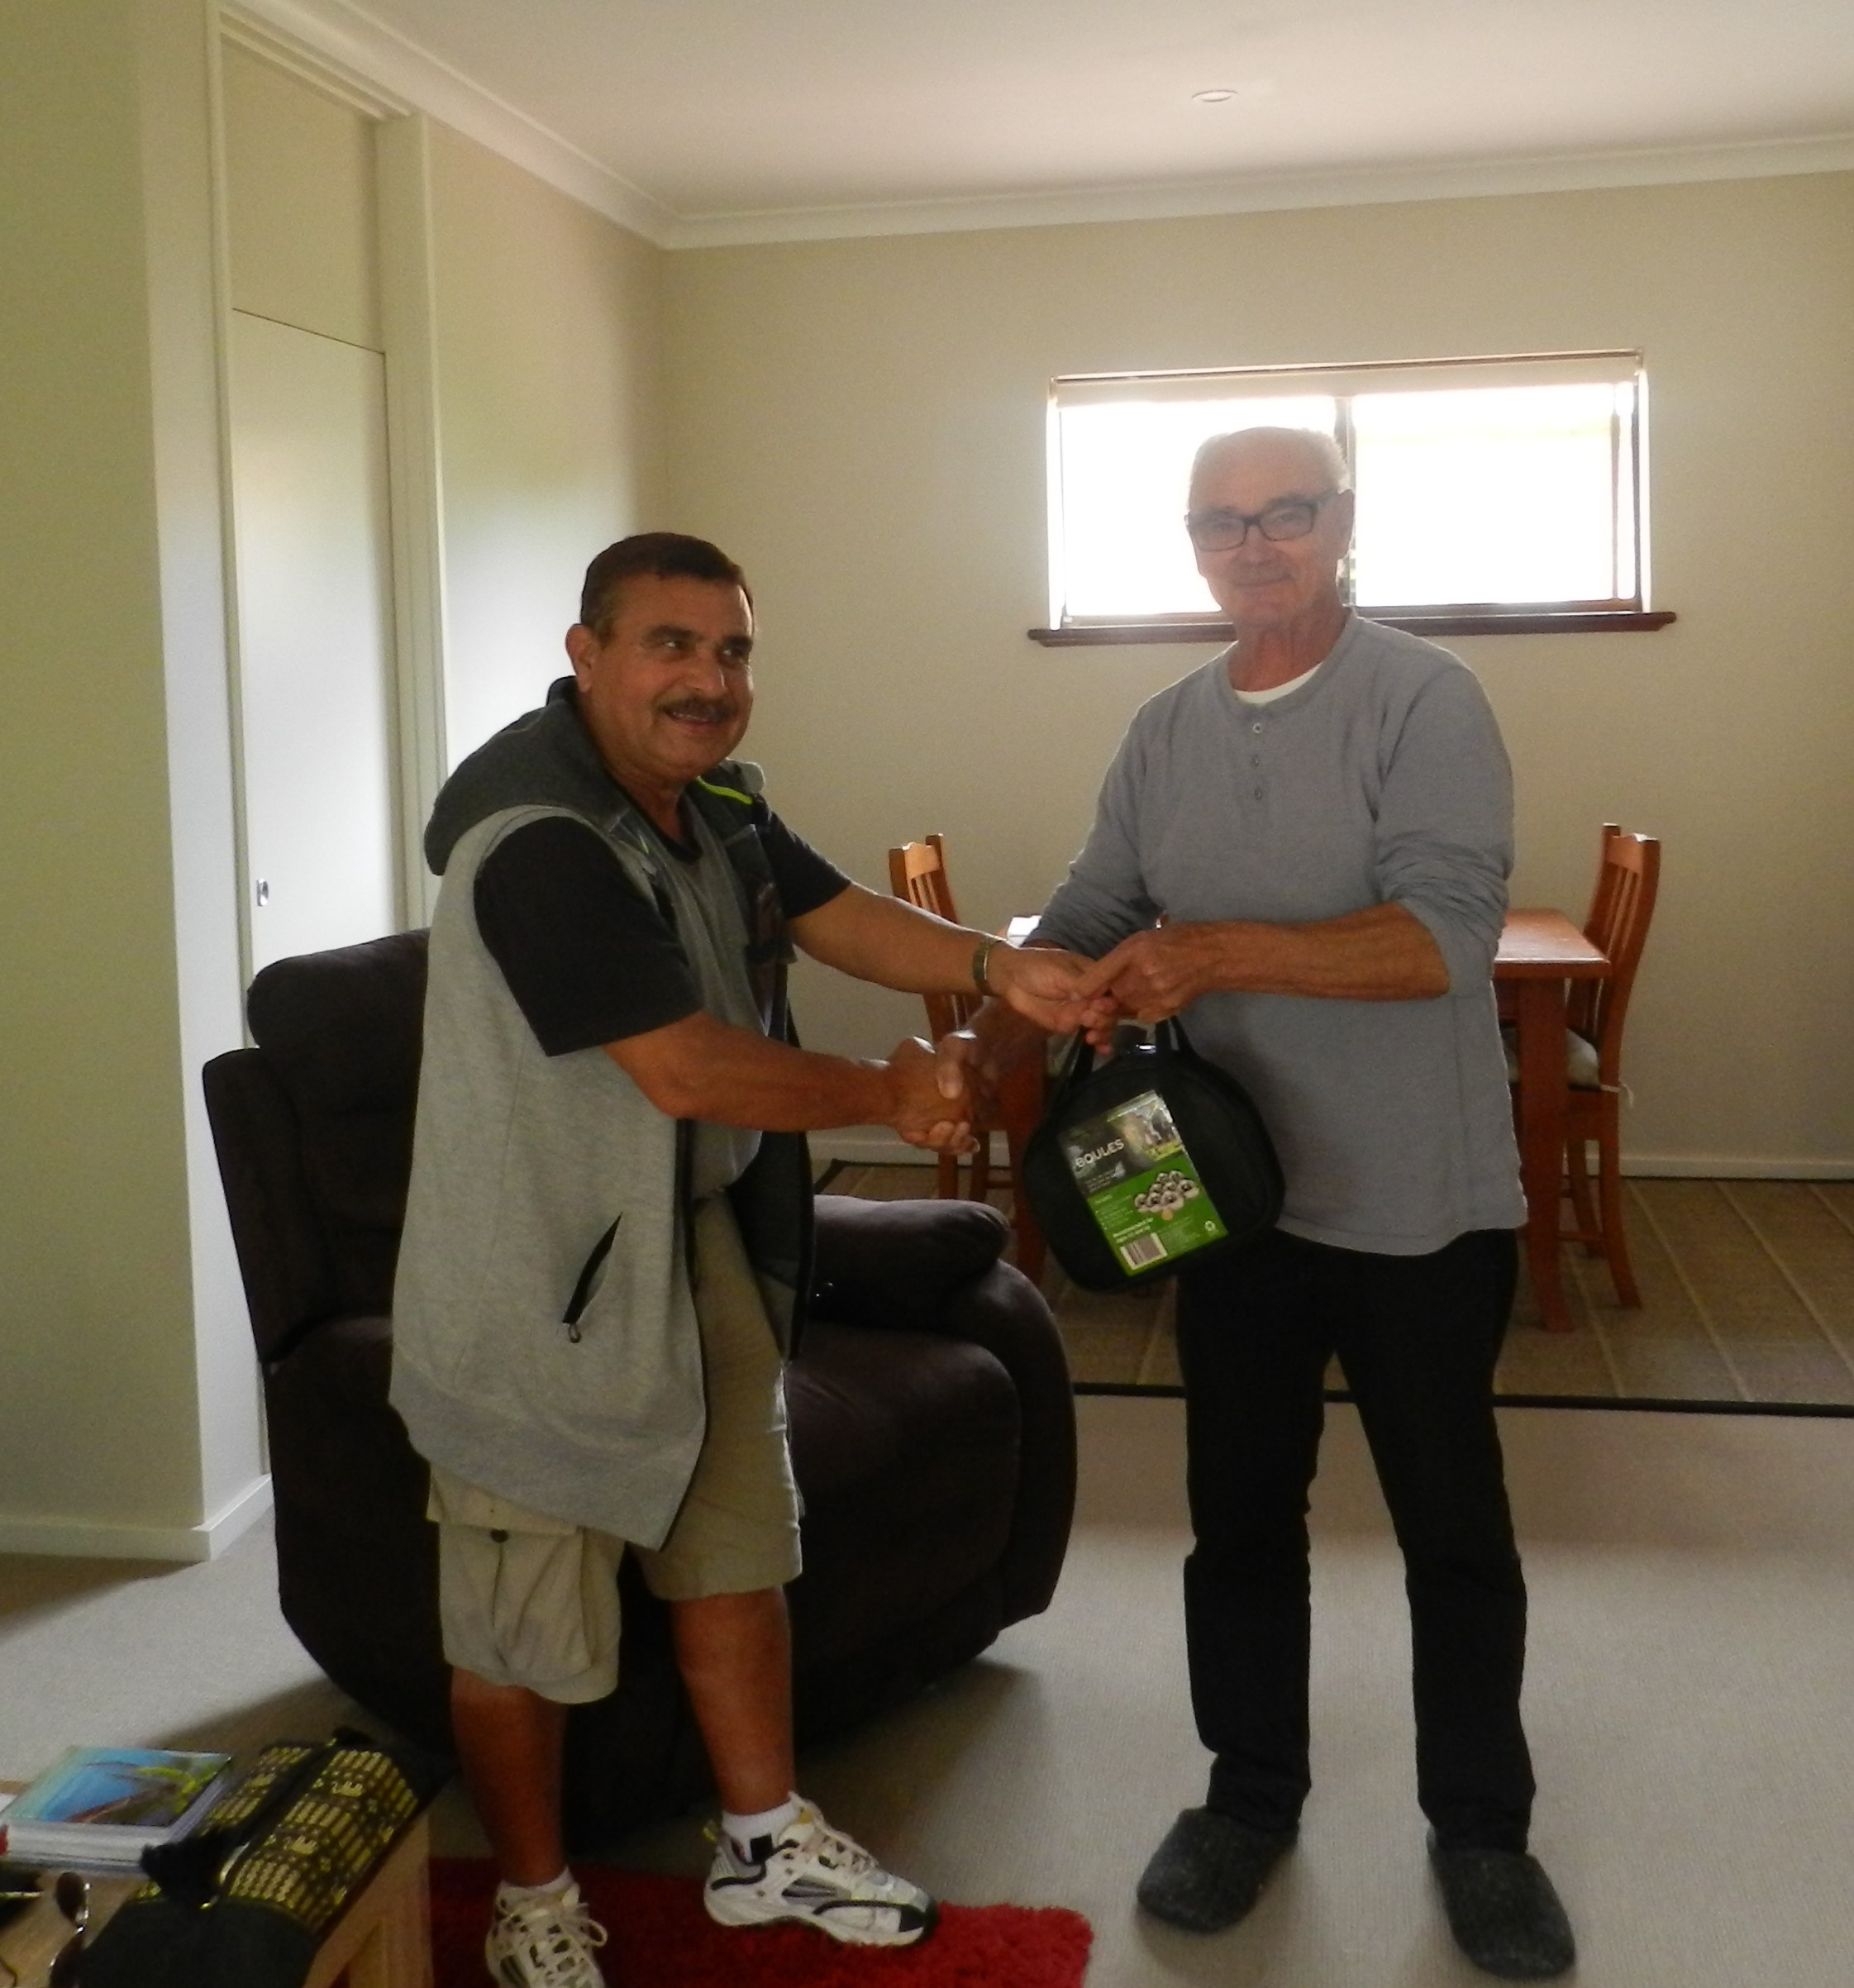 Roger Andreo lucky prize winner who won a set of Petanque Boules at the festival